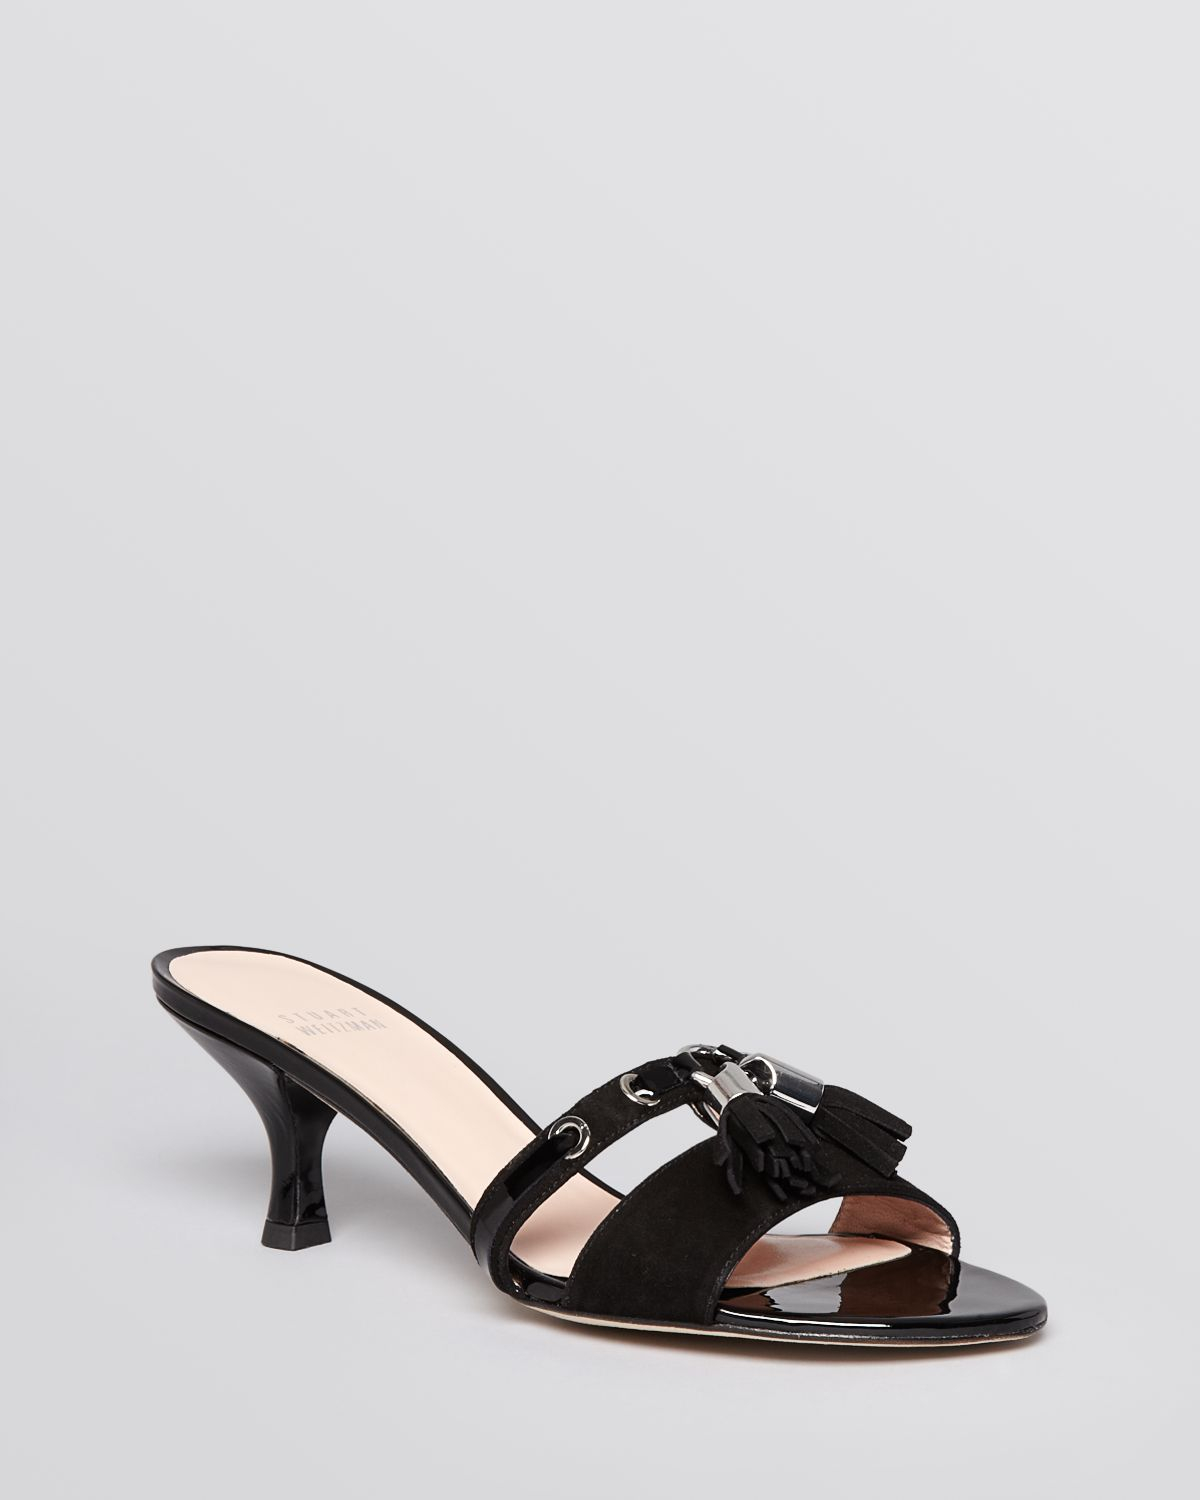 Stuart weitzman Slide Sandals Tassa Kitten Heel in Black | Lyst